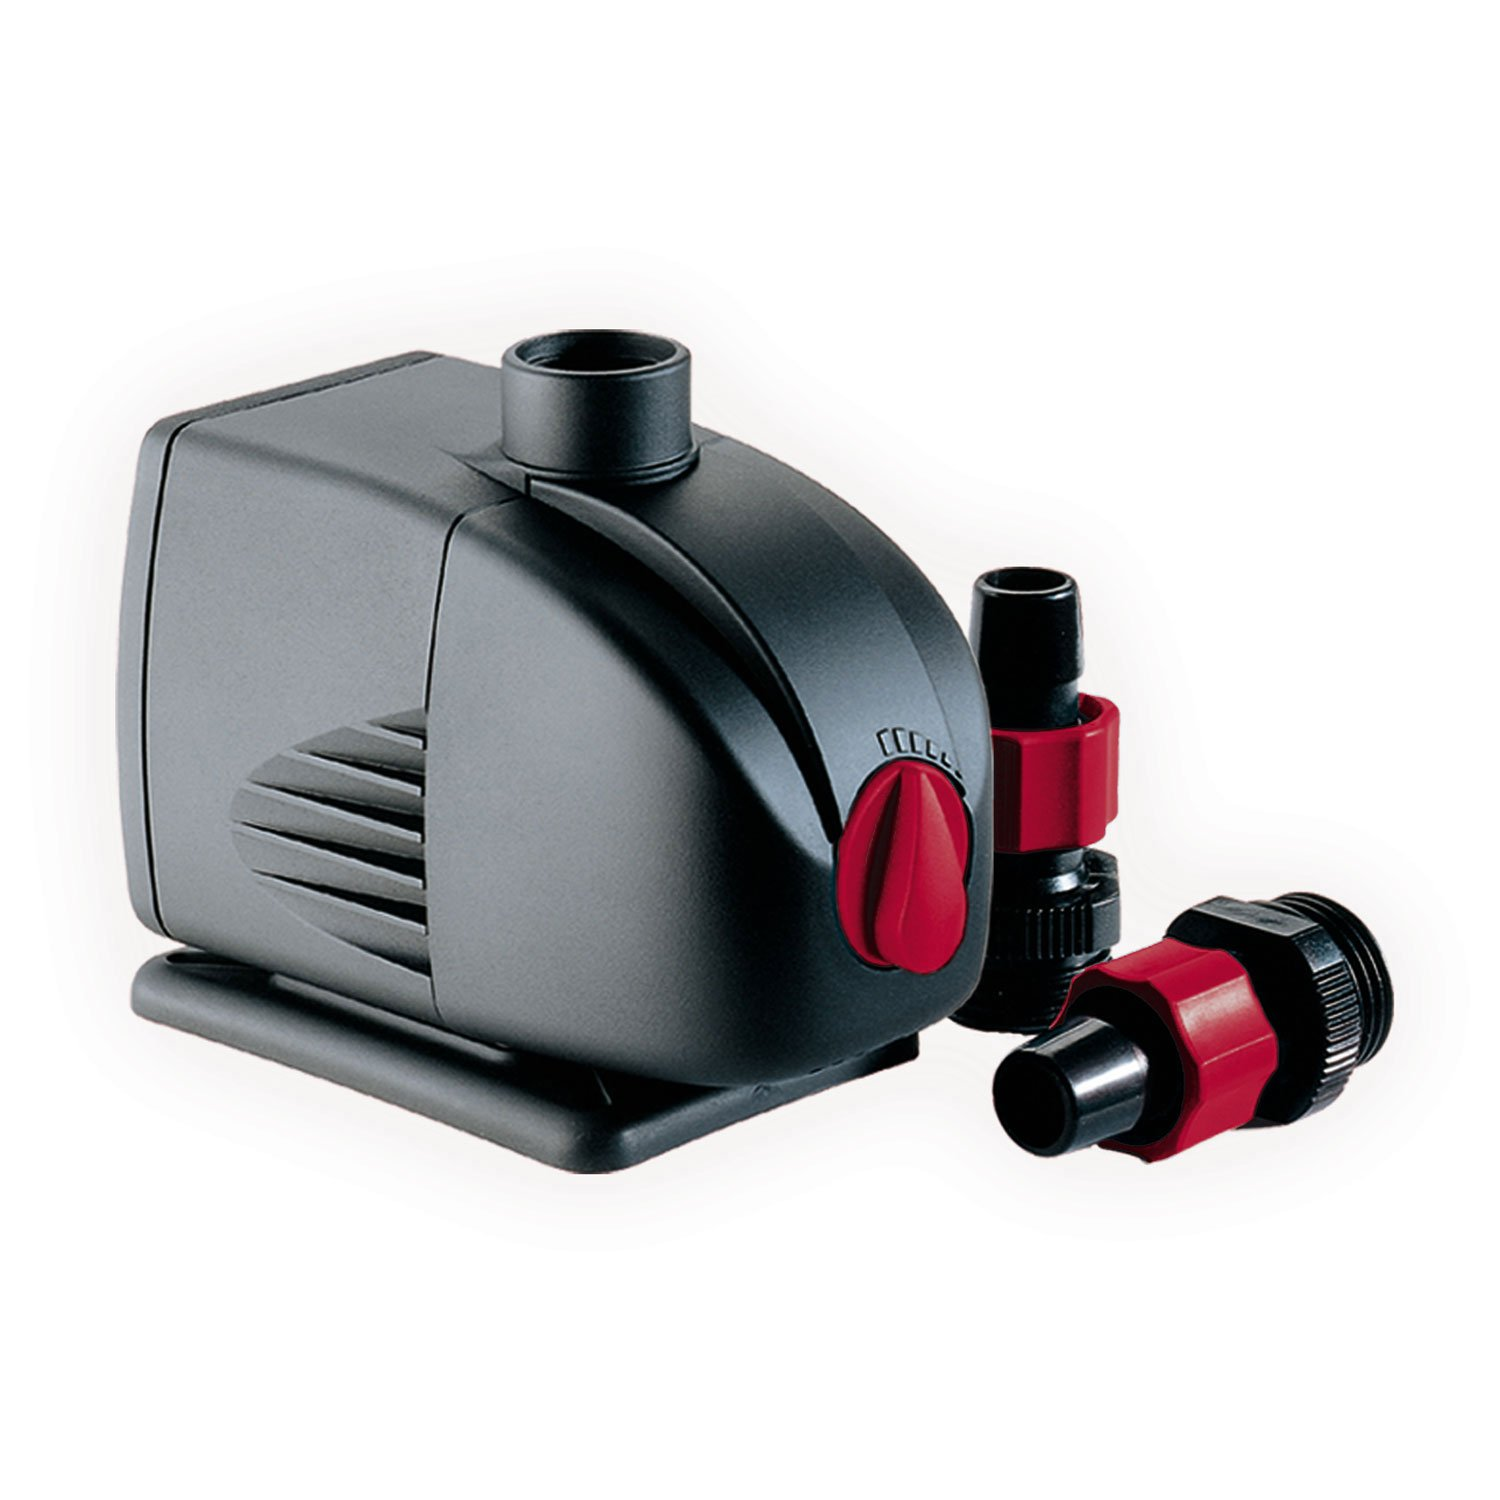 Aquarium fish tank pump - Hydor Seltz Aquarium Water Pump